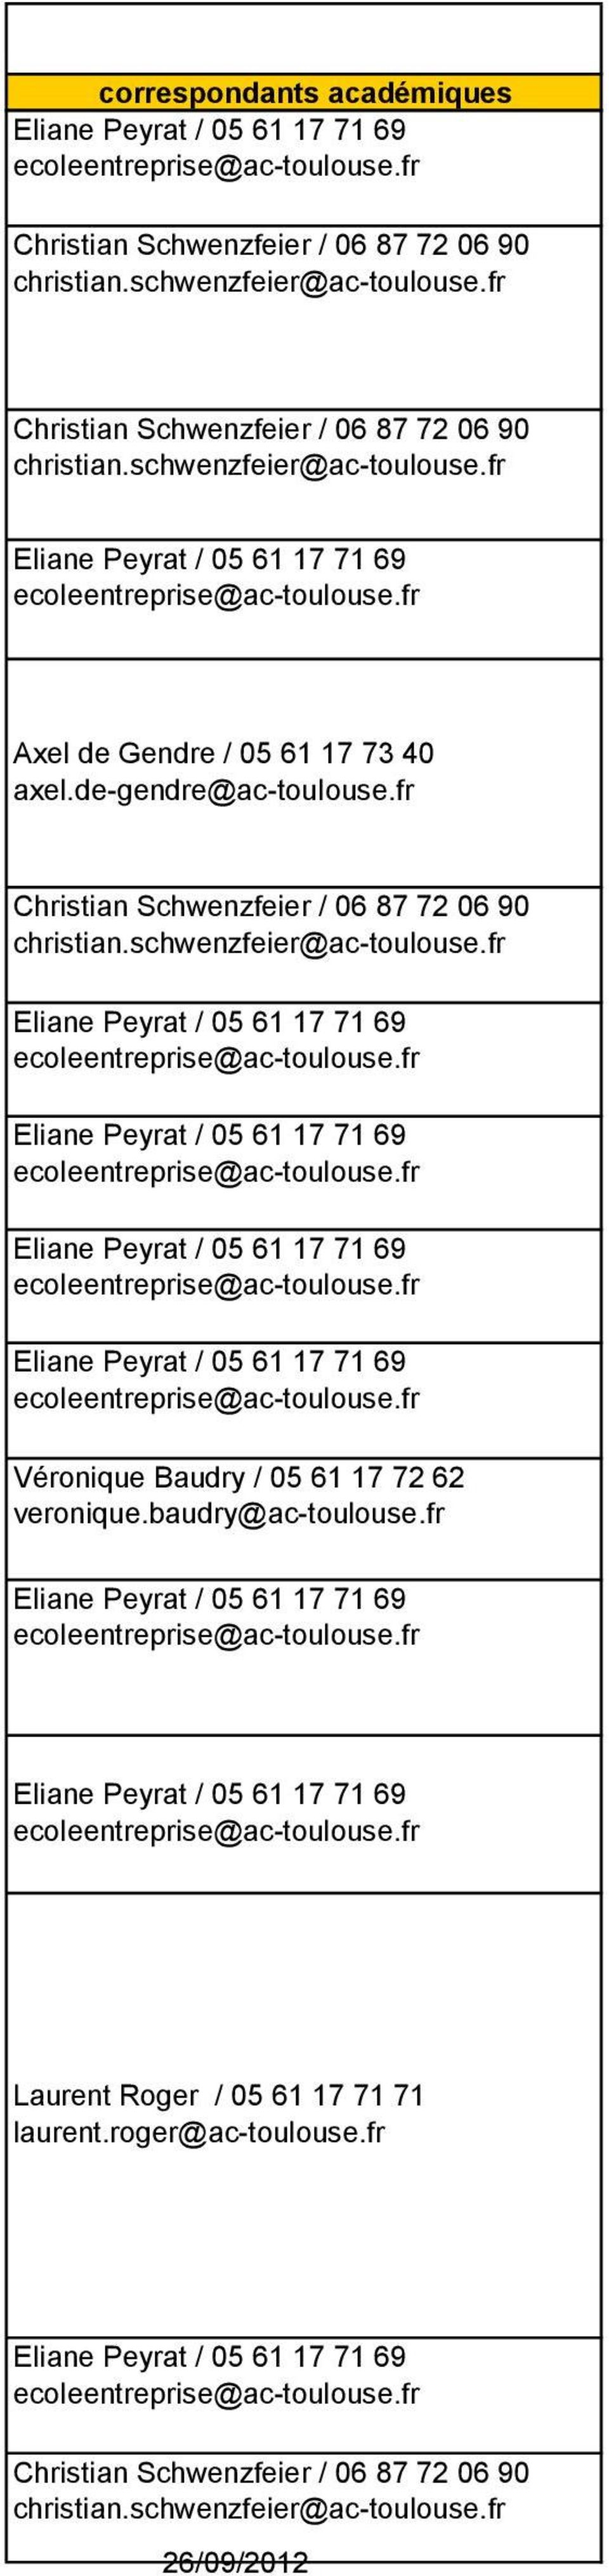 fr Véronique Baudry / 05 61 17 72 62 veronique.